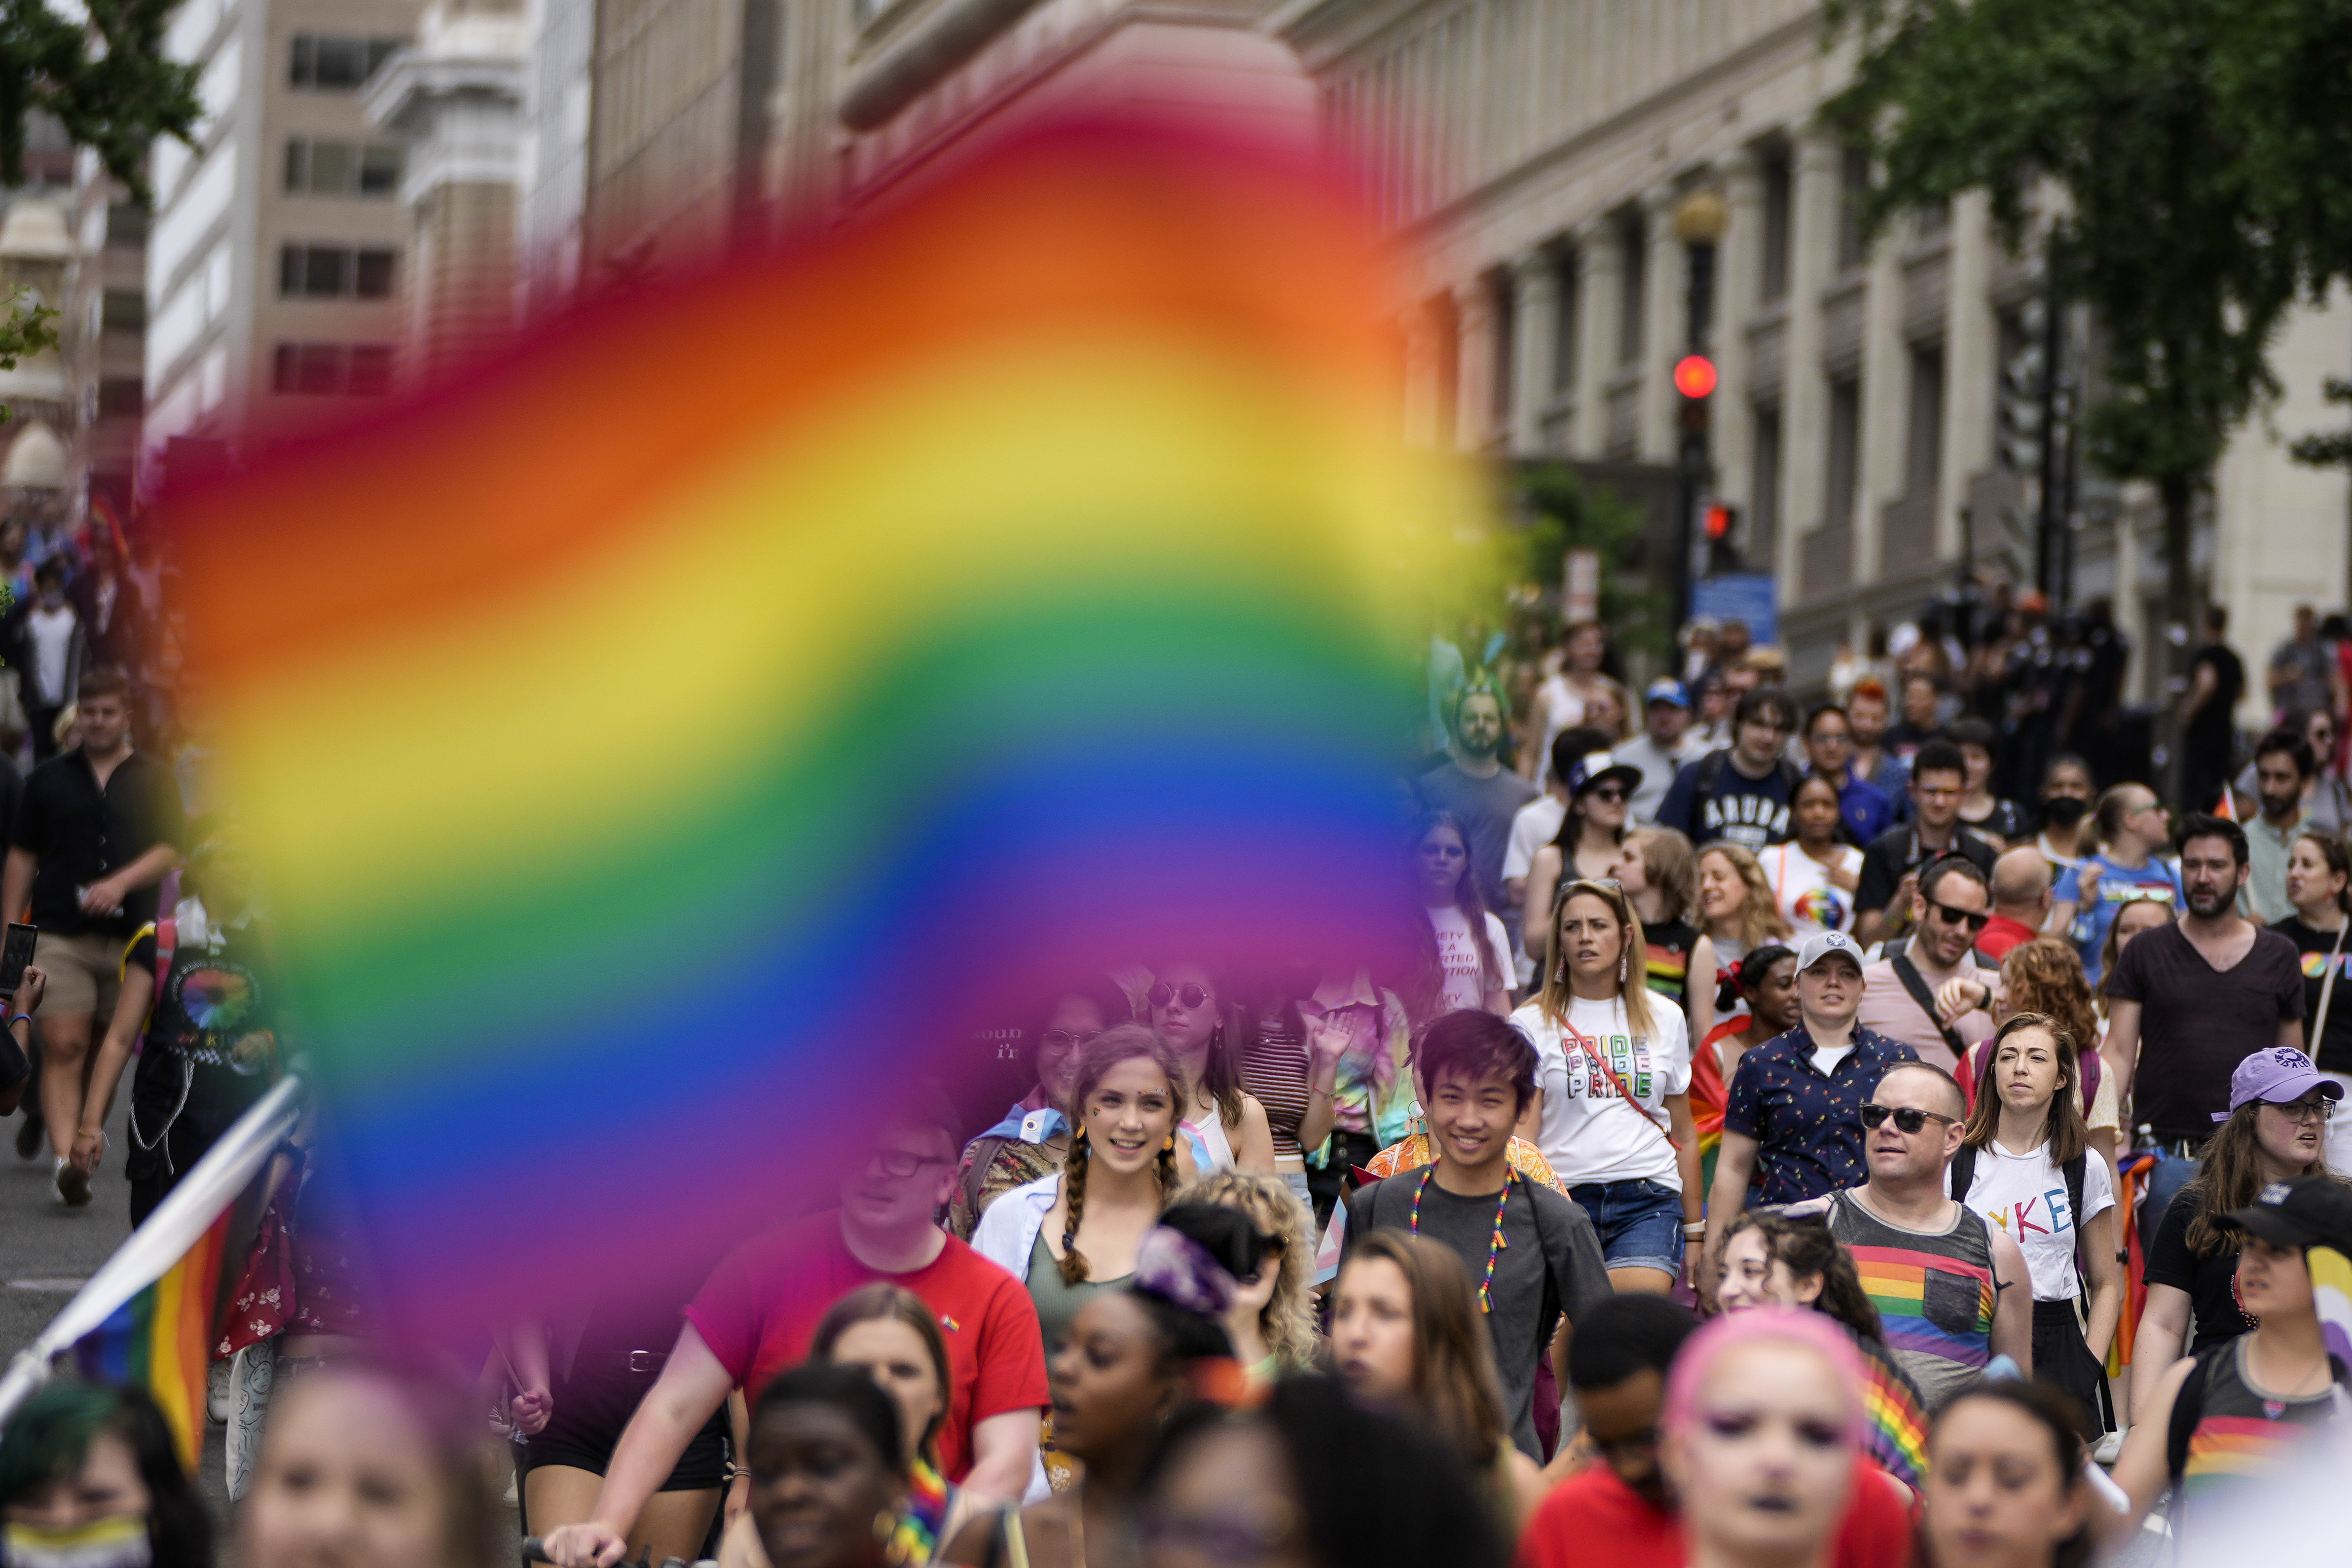 A huge crowd of people march down a city street as a Pride flag hangs in the foreground.